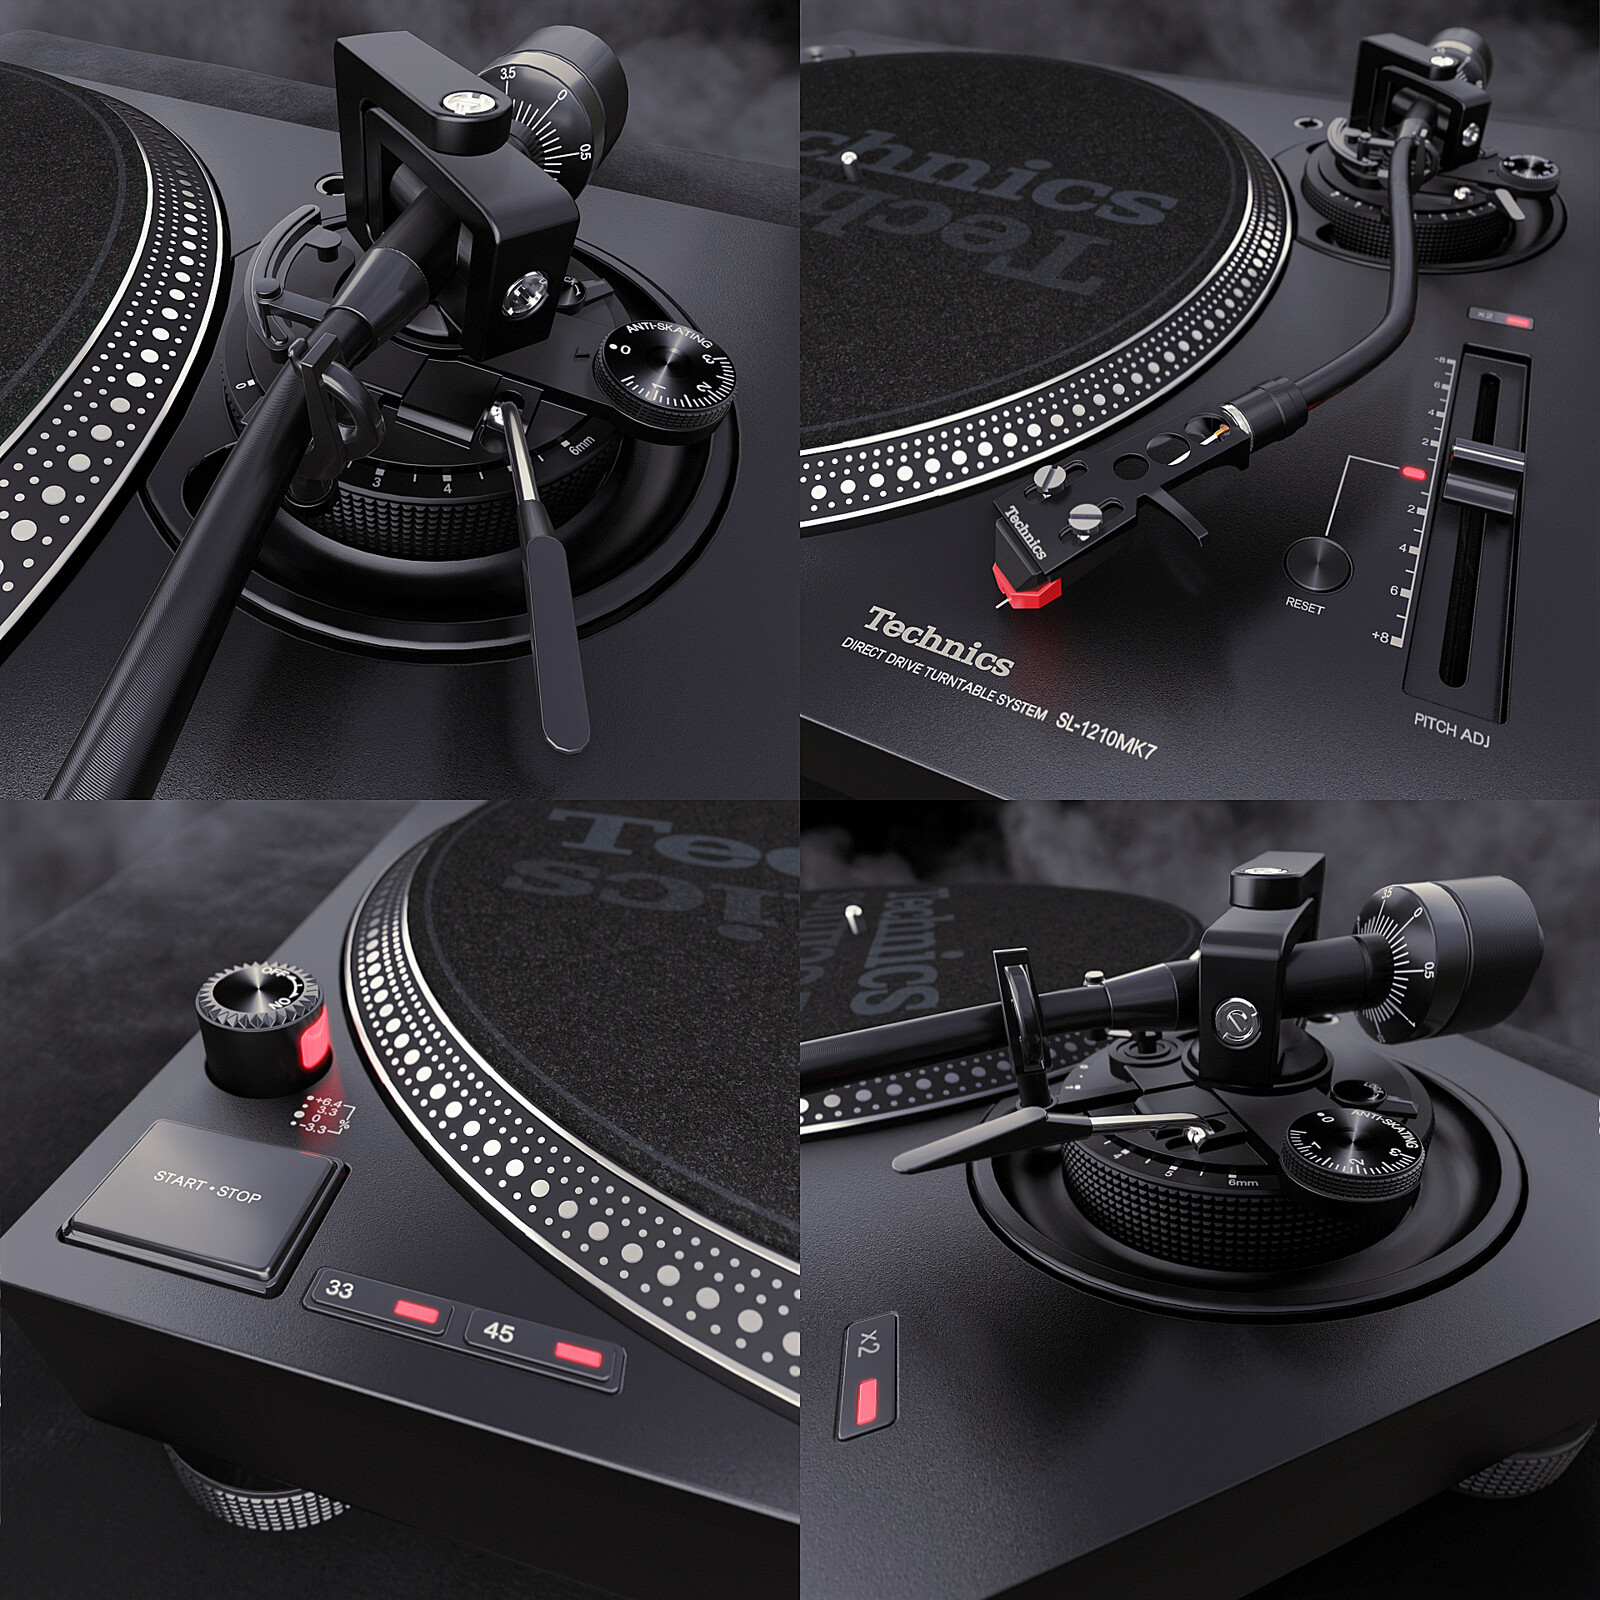 Close-ups from my modeling work on the Technics turntable.